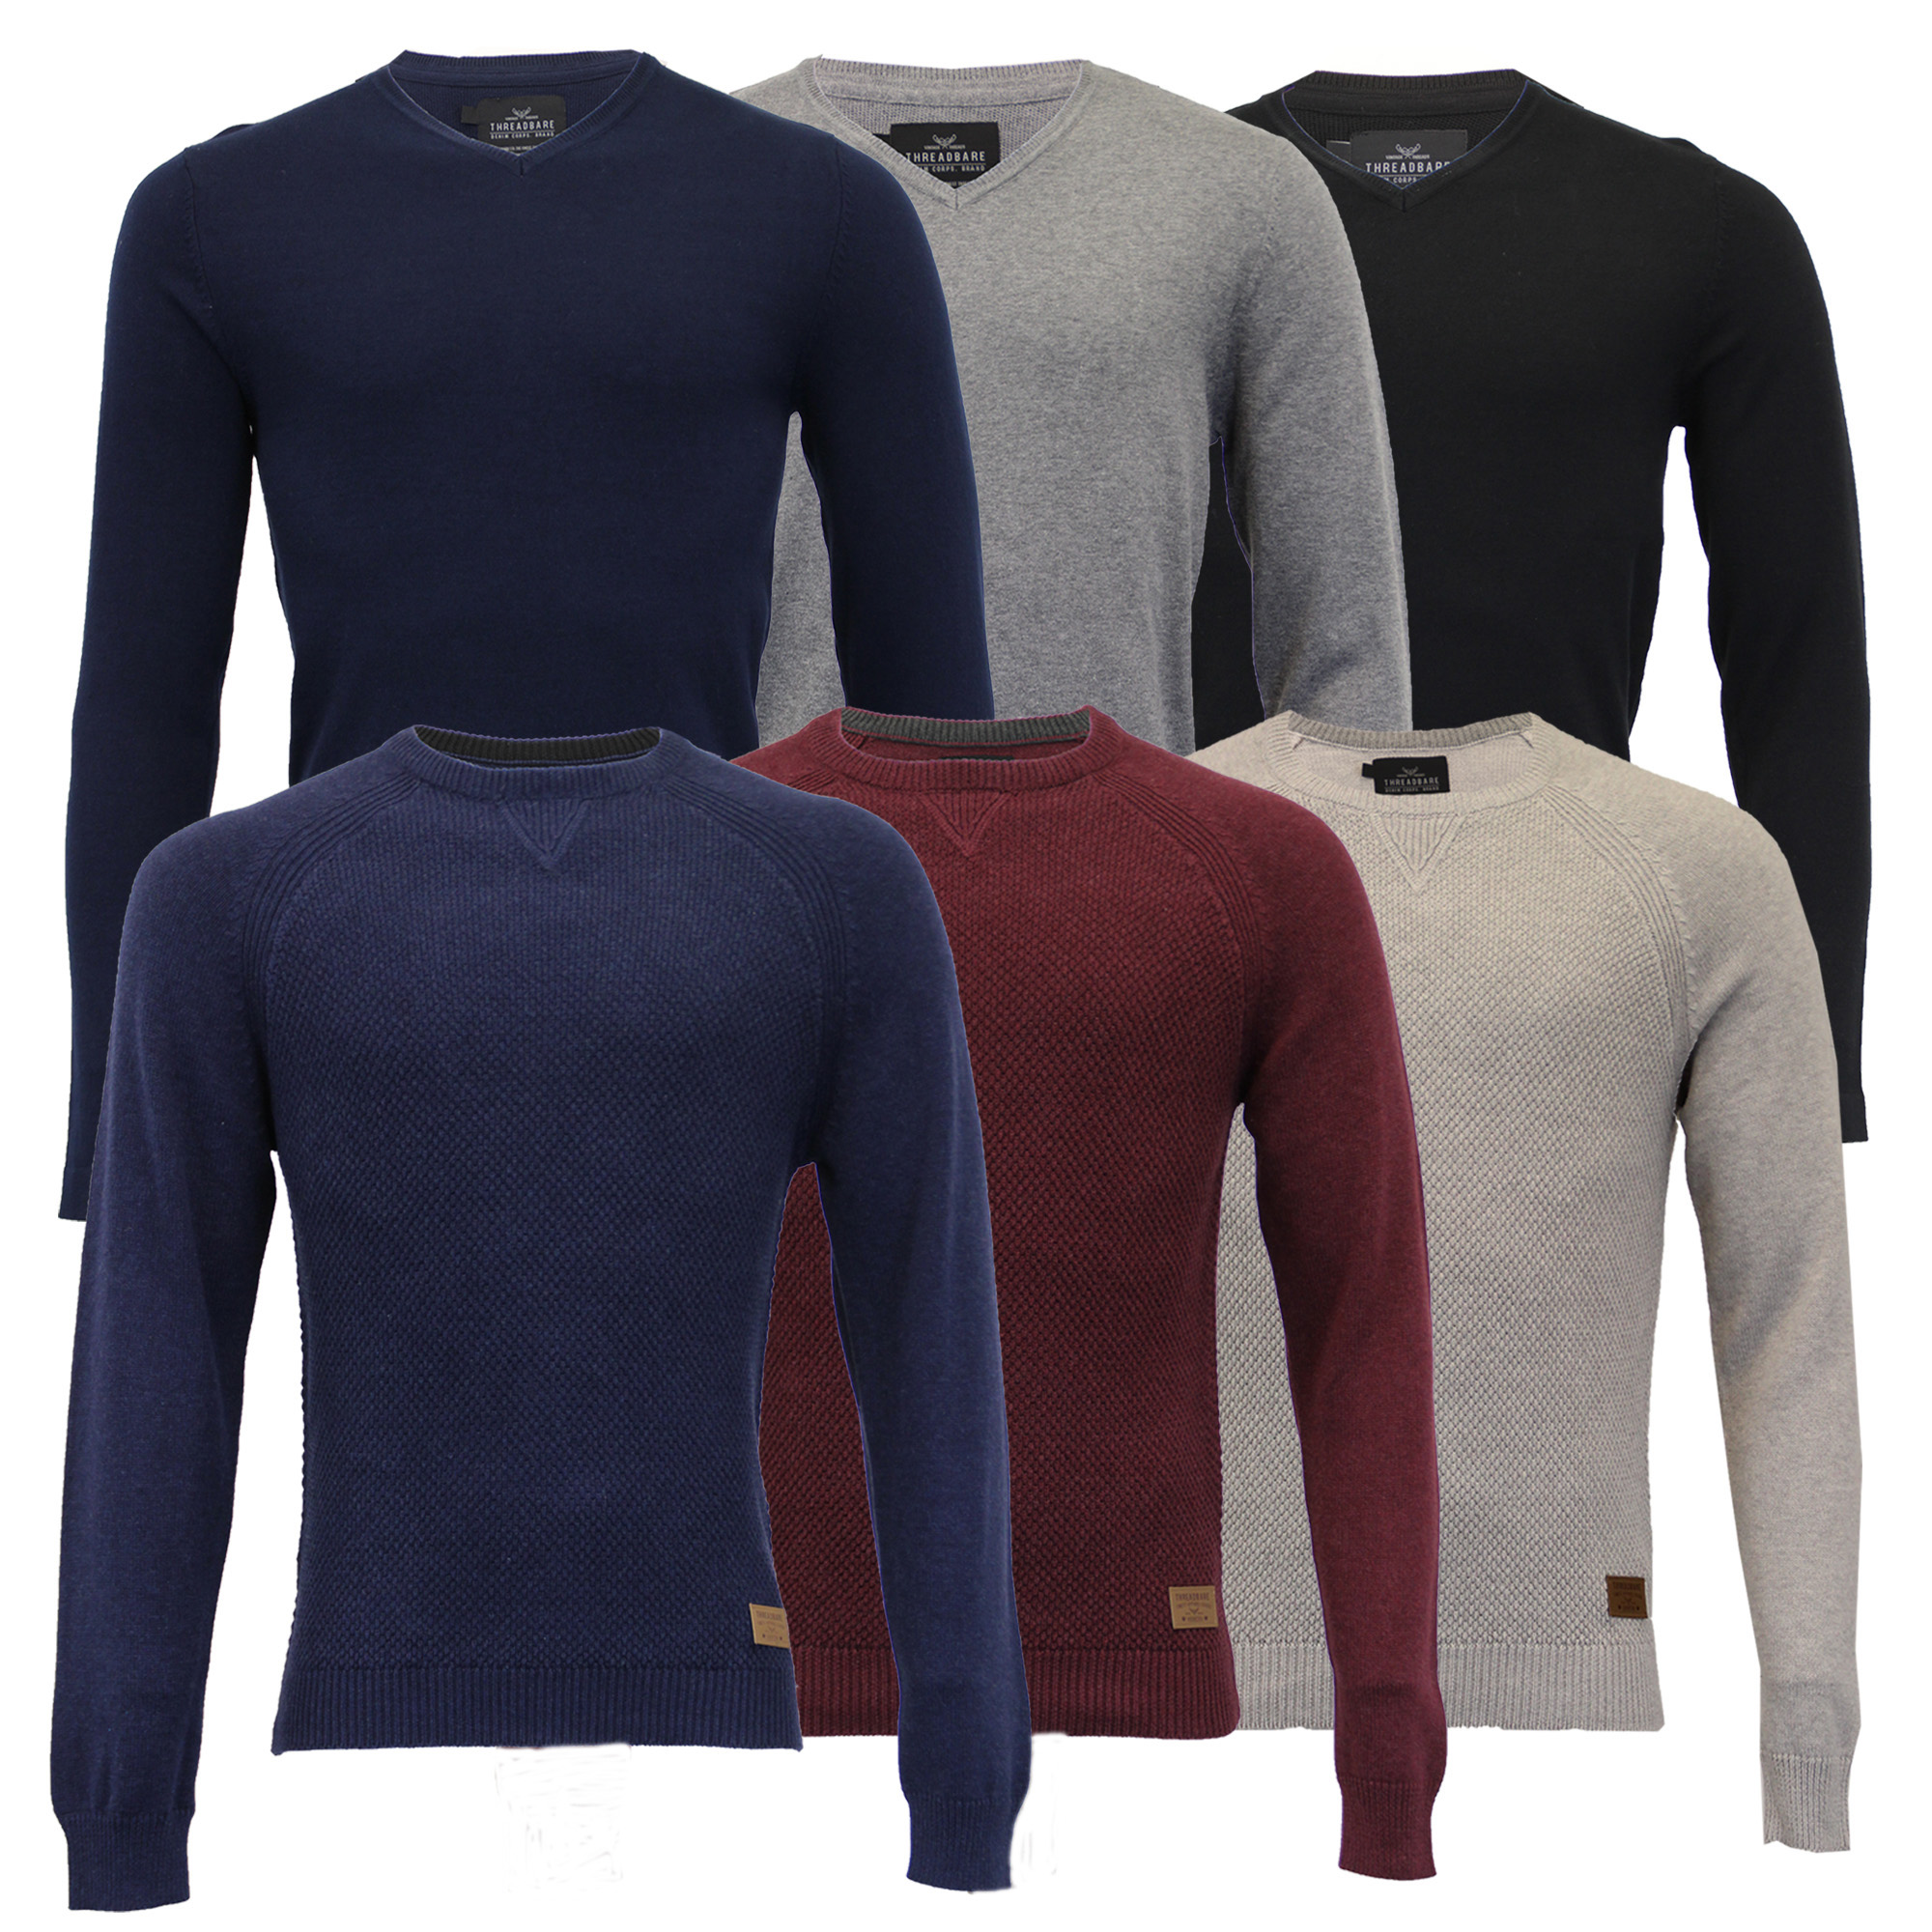 Mens-Jumper-Threadbare-Knitted-Cotton-Sweater-Half-Zip-Pullover-Top-Winter-New thumbnail 4